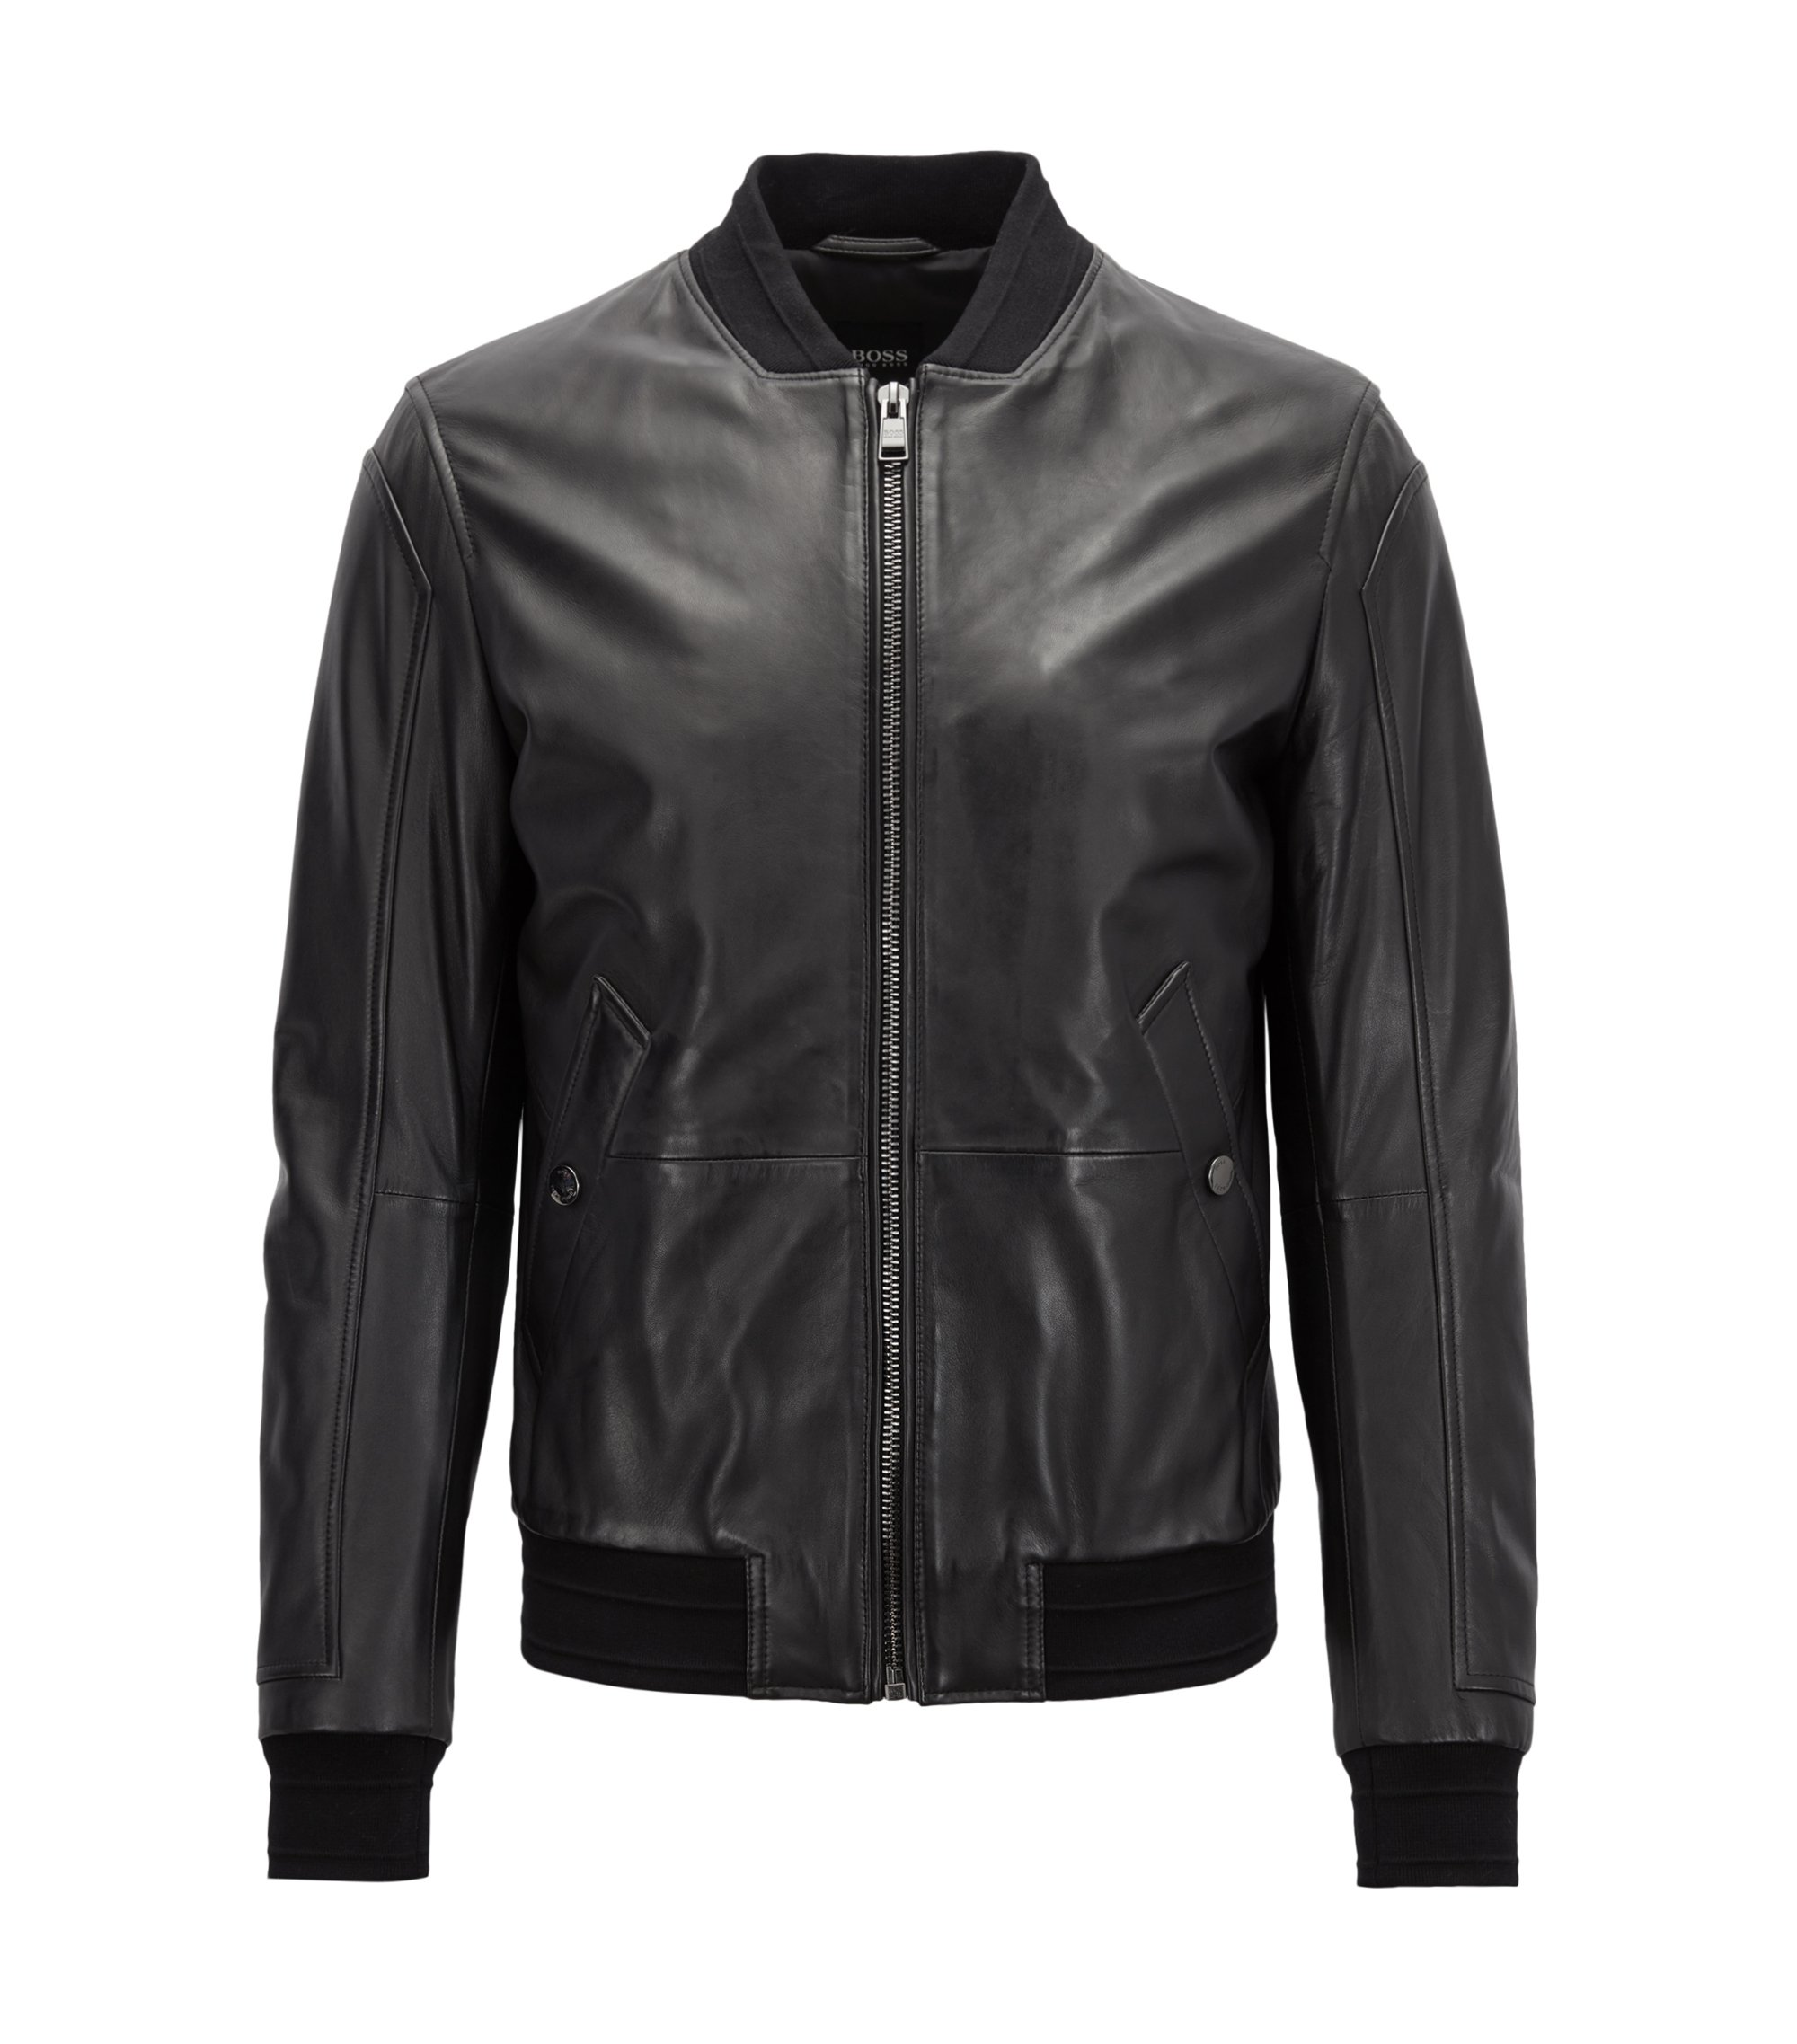 Regular-fit leather bomber jacket in matt nappa lambskin, Black